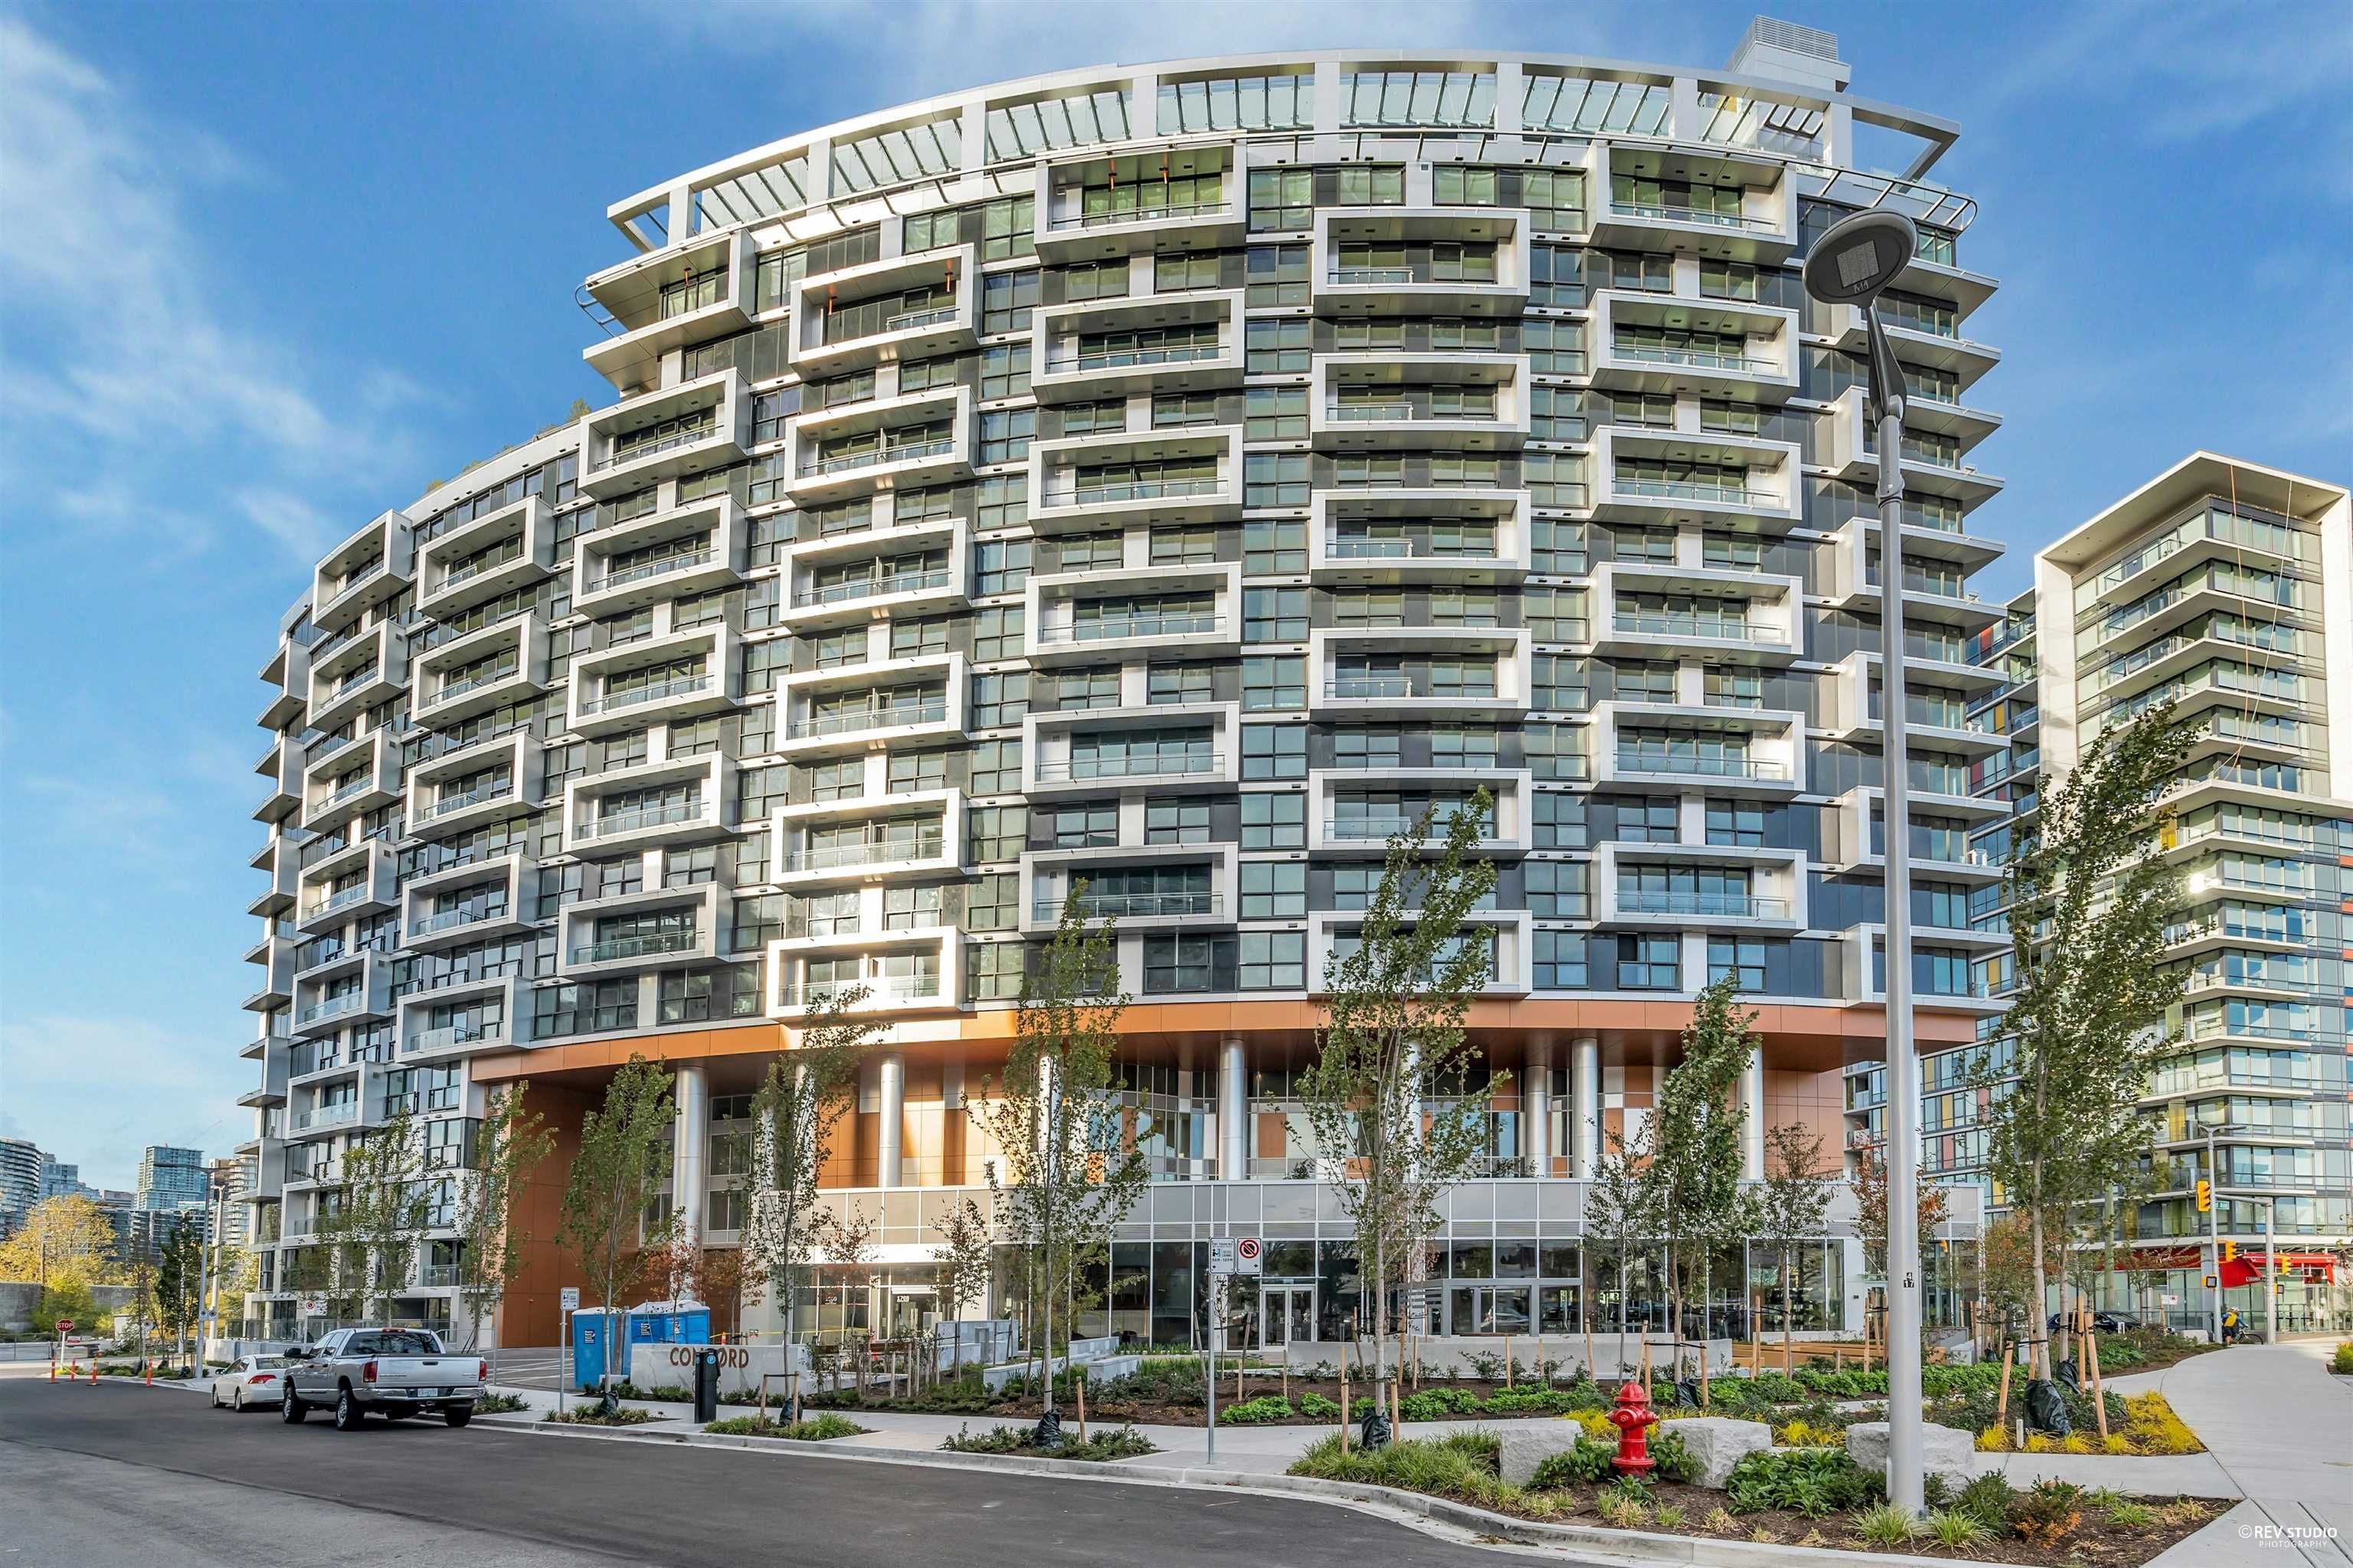 """Main Photo: 509 1768 COOK Street in Vancouver: False Creek Condo for sale in """"Avenue One"""" (Vancouver West)  : MLS®# R2625524"""